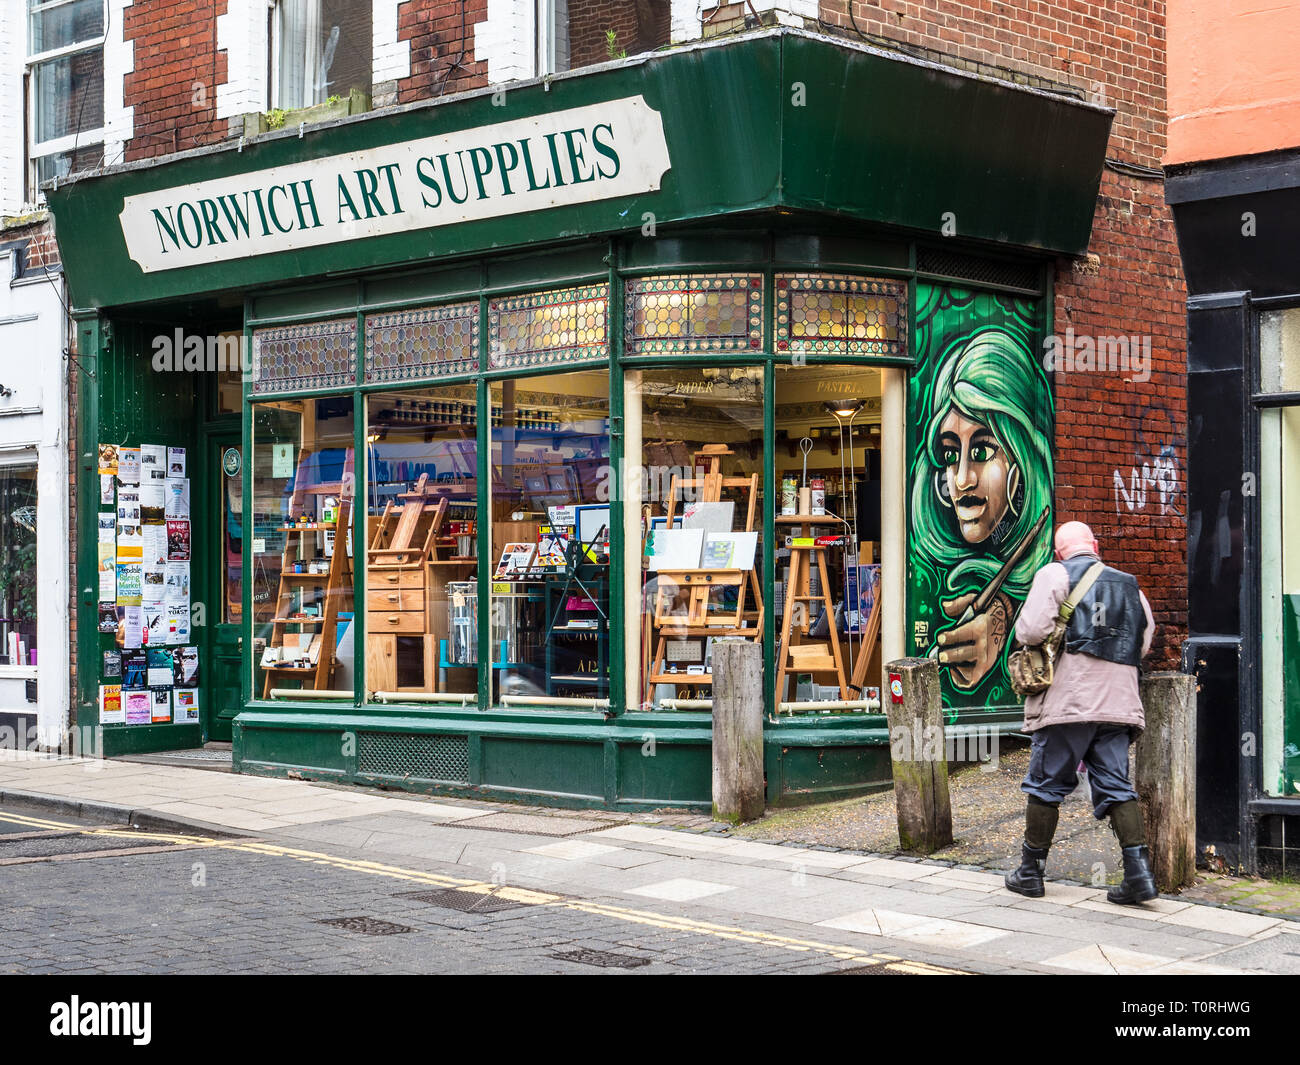 Norwich Art Supplies Shop in central Norwich UK - Stock Image